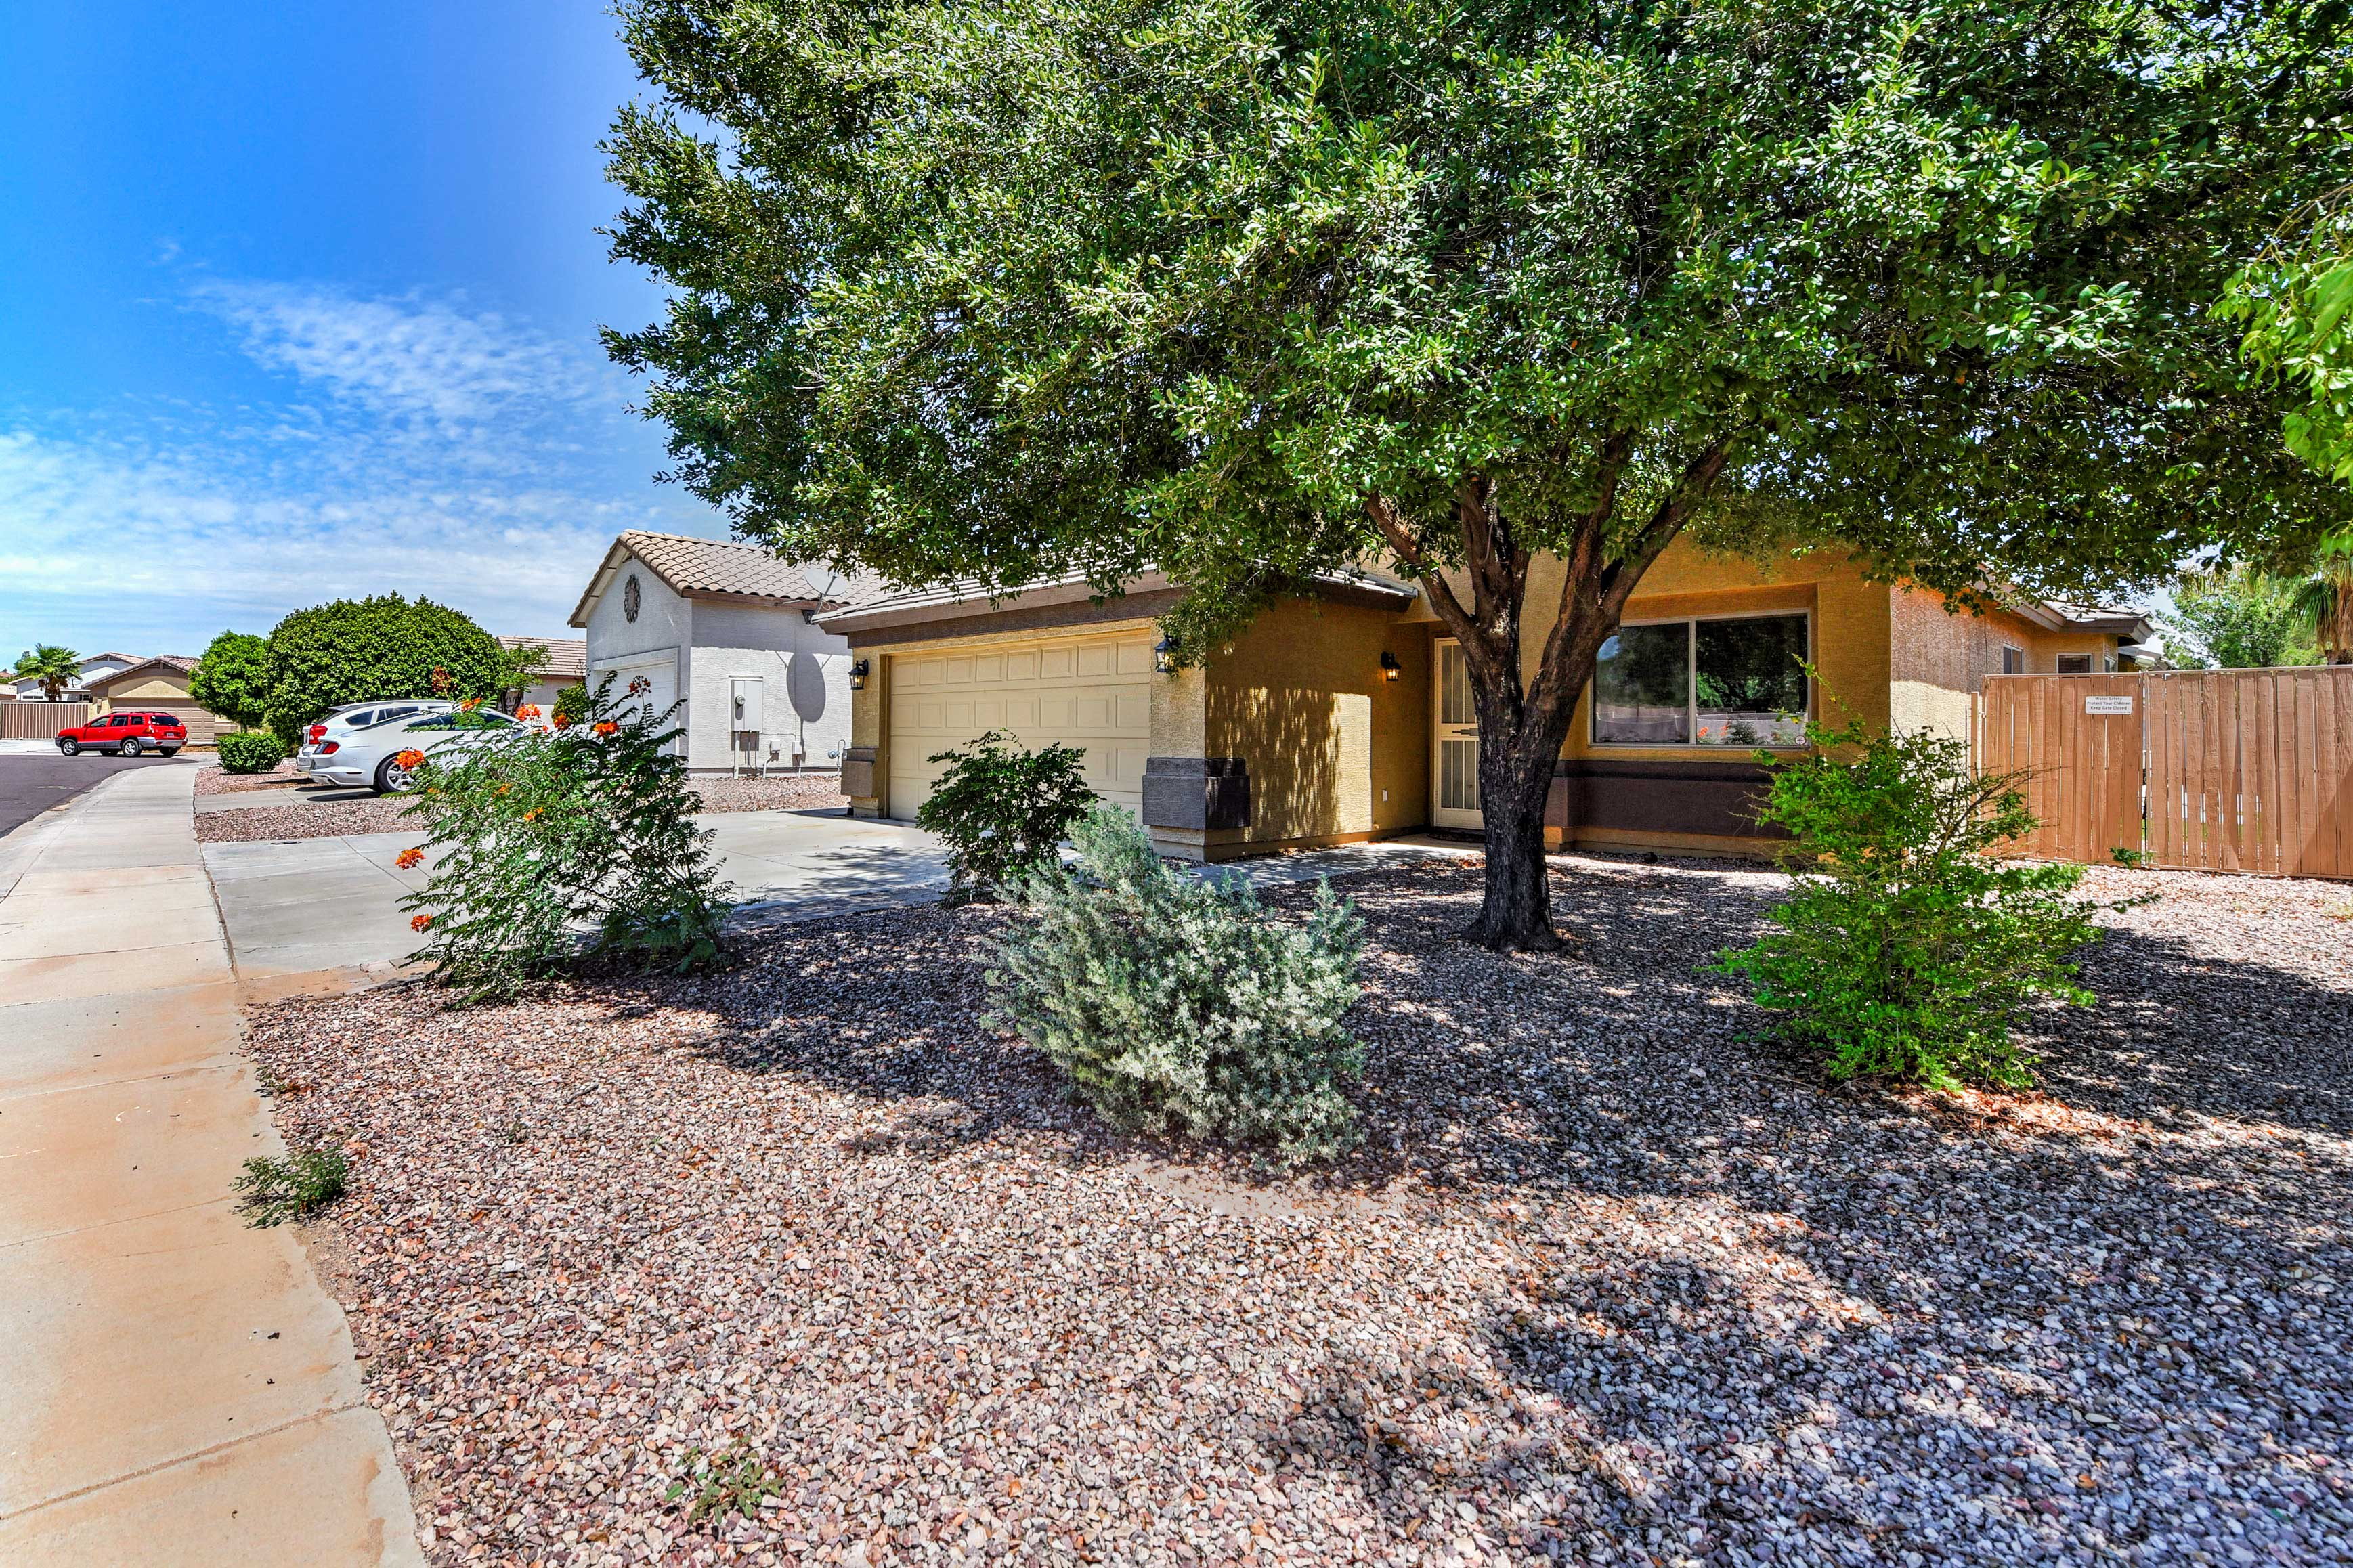 This Surprise home is perfect for your next sunny Arizona getaway!